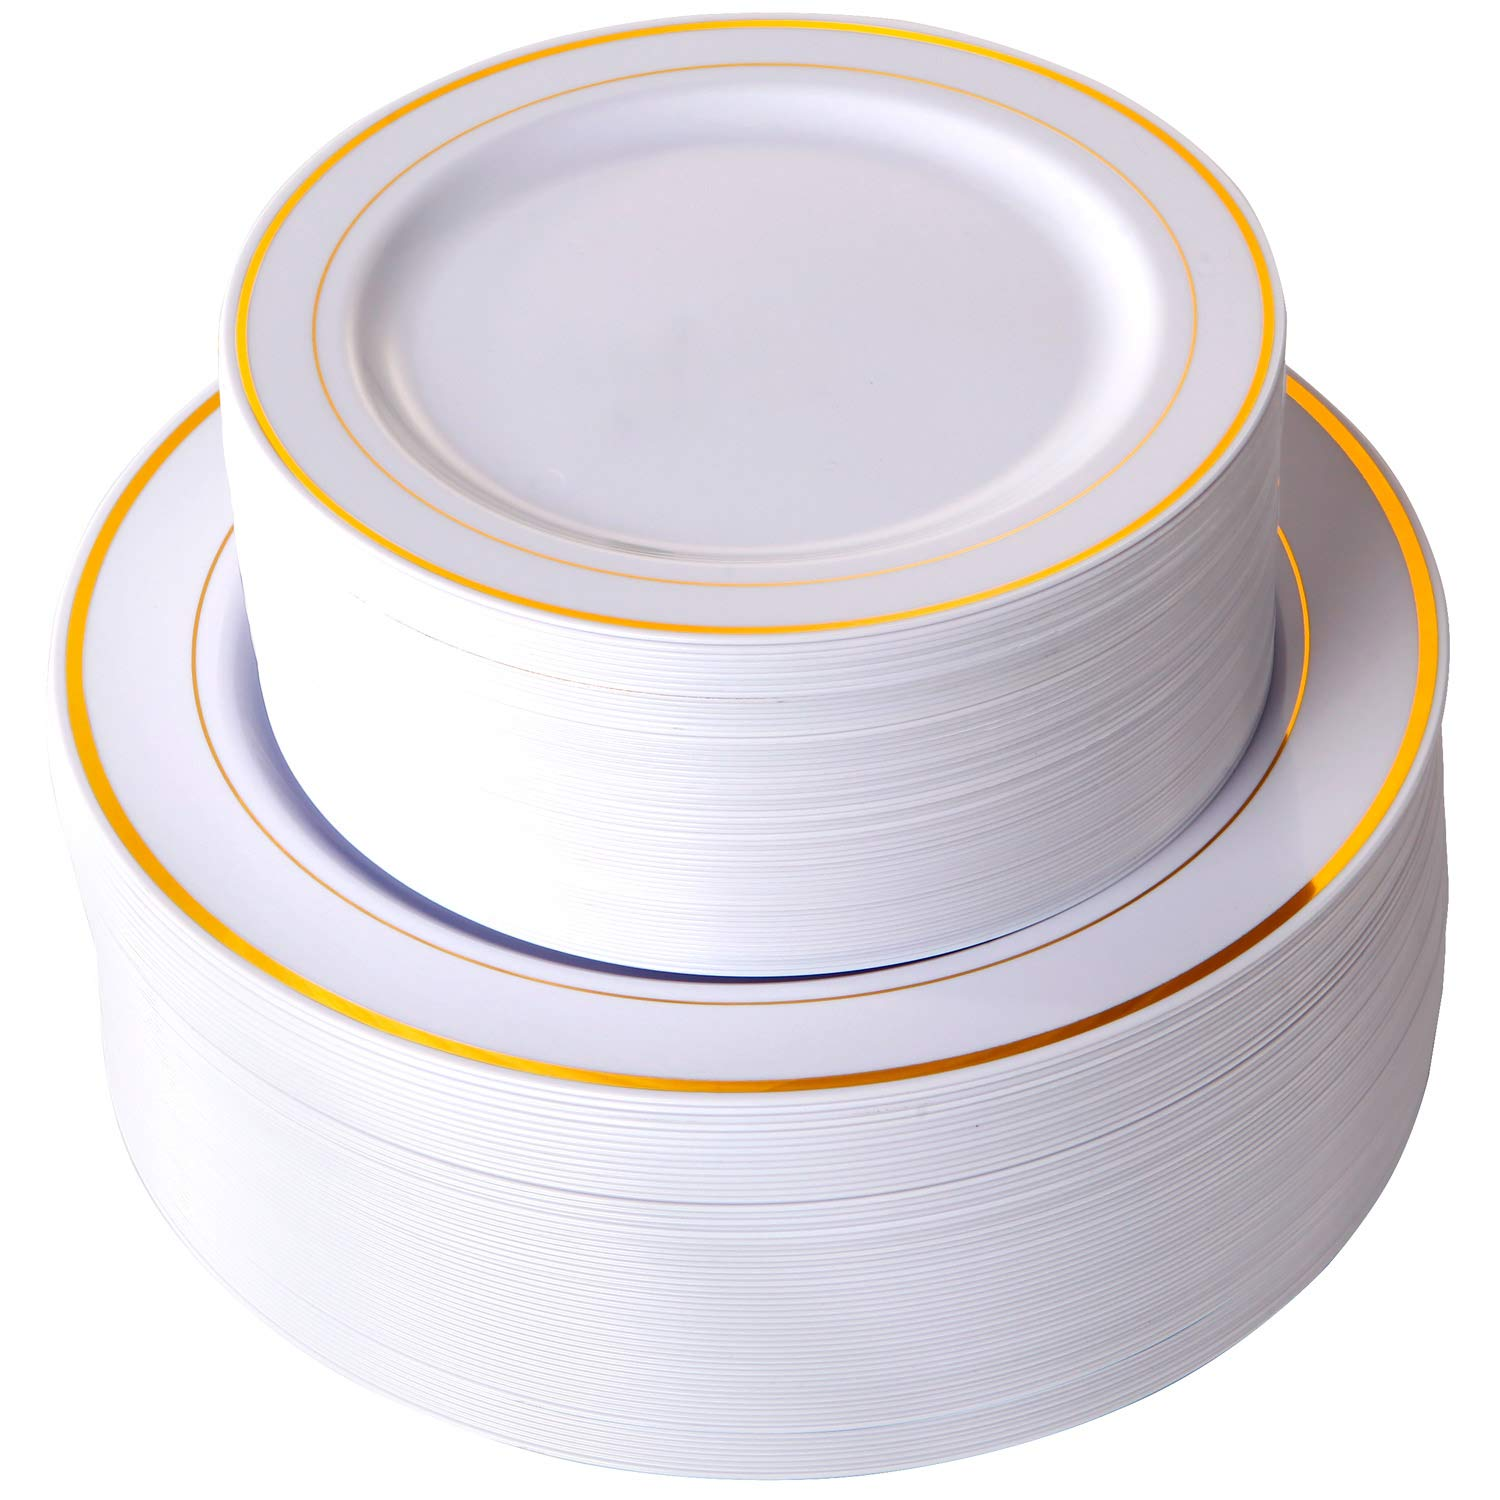 102 Pieces Gold Plastic Plates, White Party Plates, Premium Heavyweight Disposable Wedding Plates Includes: 51 Dinner Plates 10.25 Inch and 51 Salad/Dessert Plates 7.5 Inch by I00000